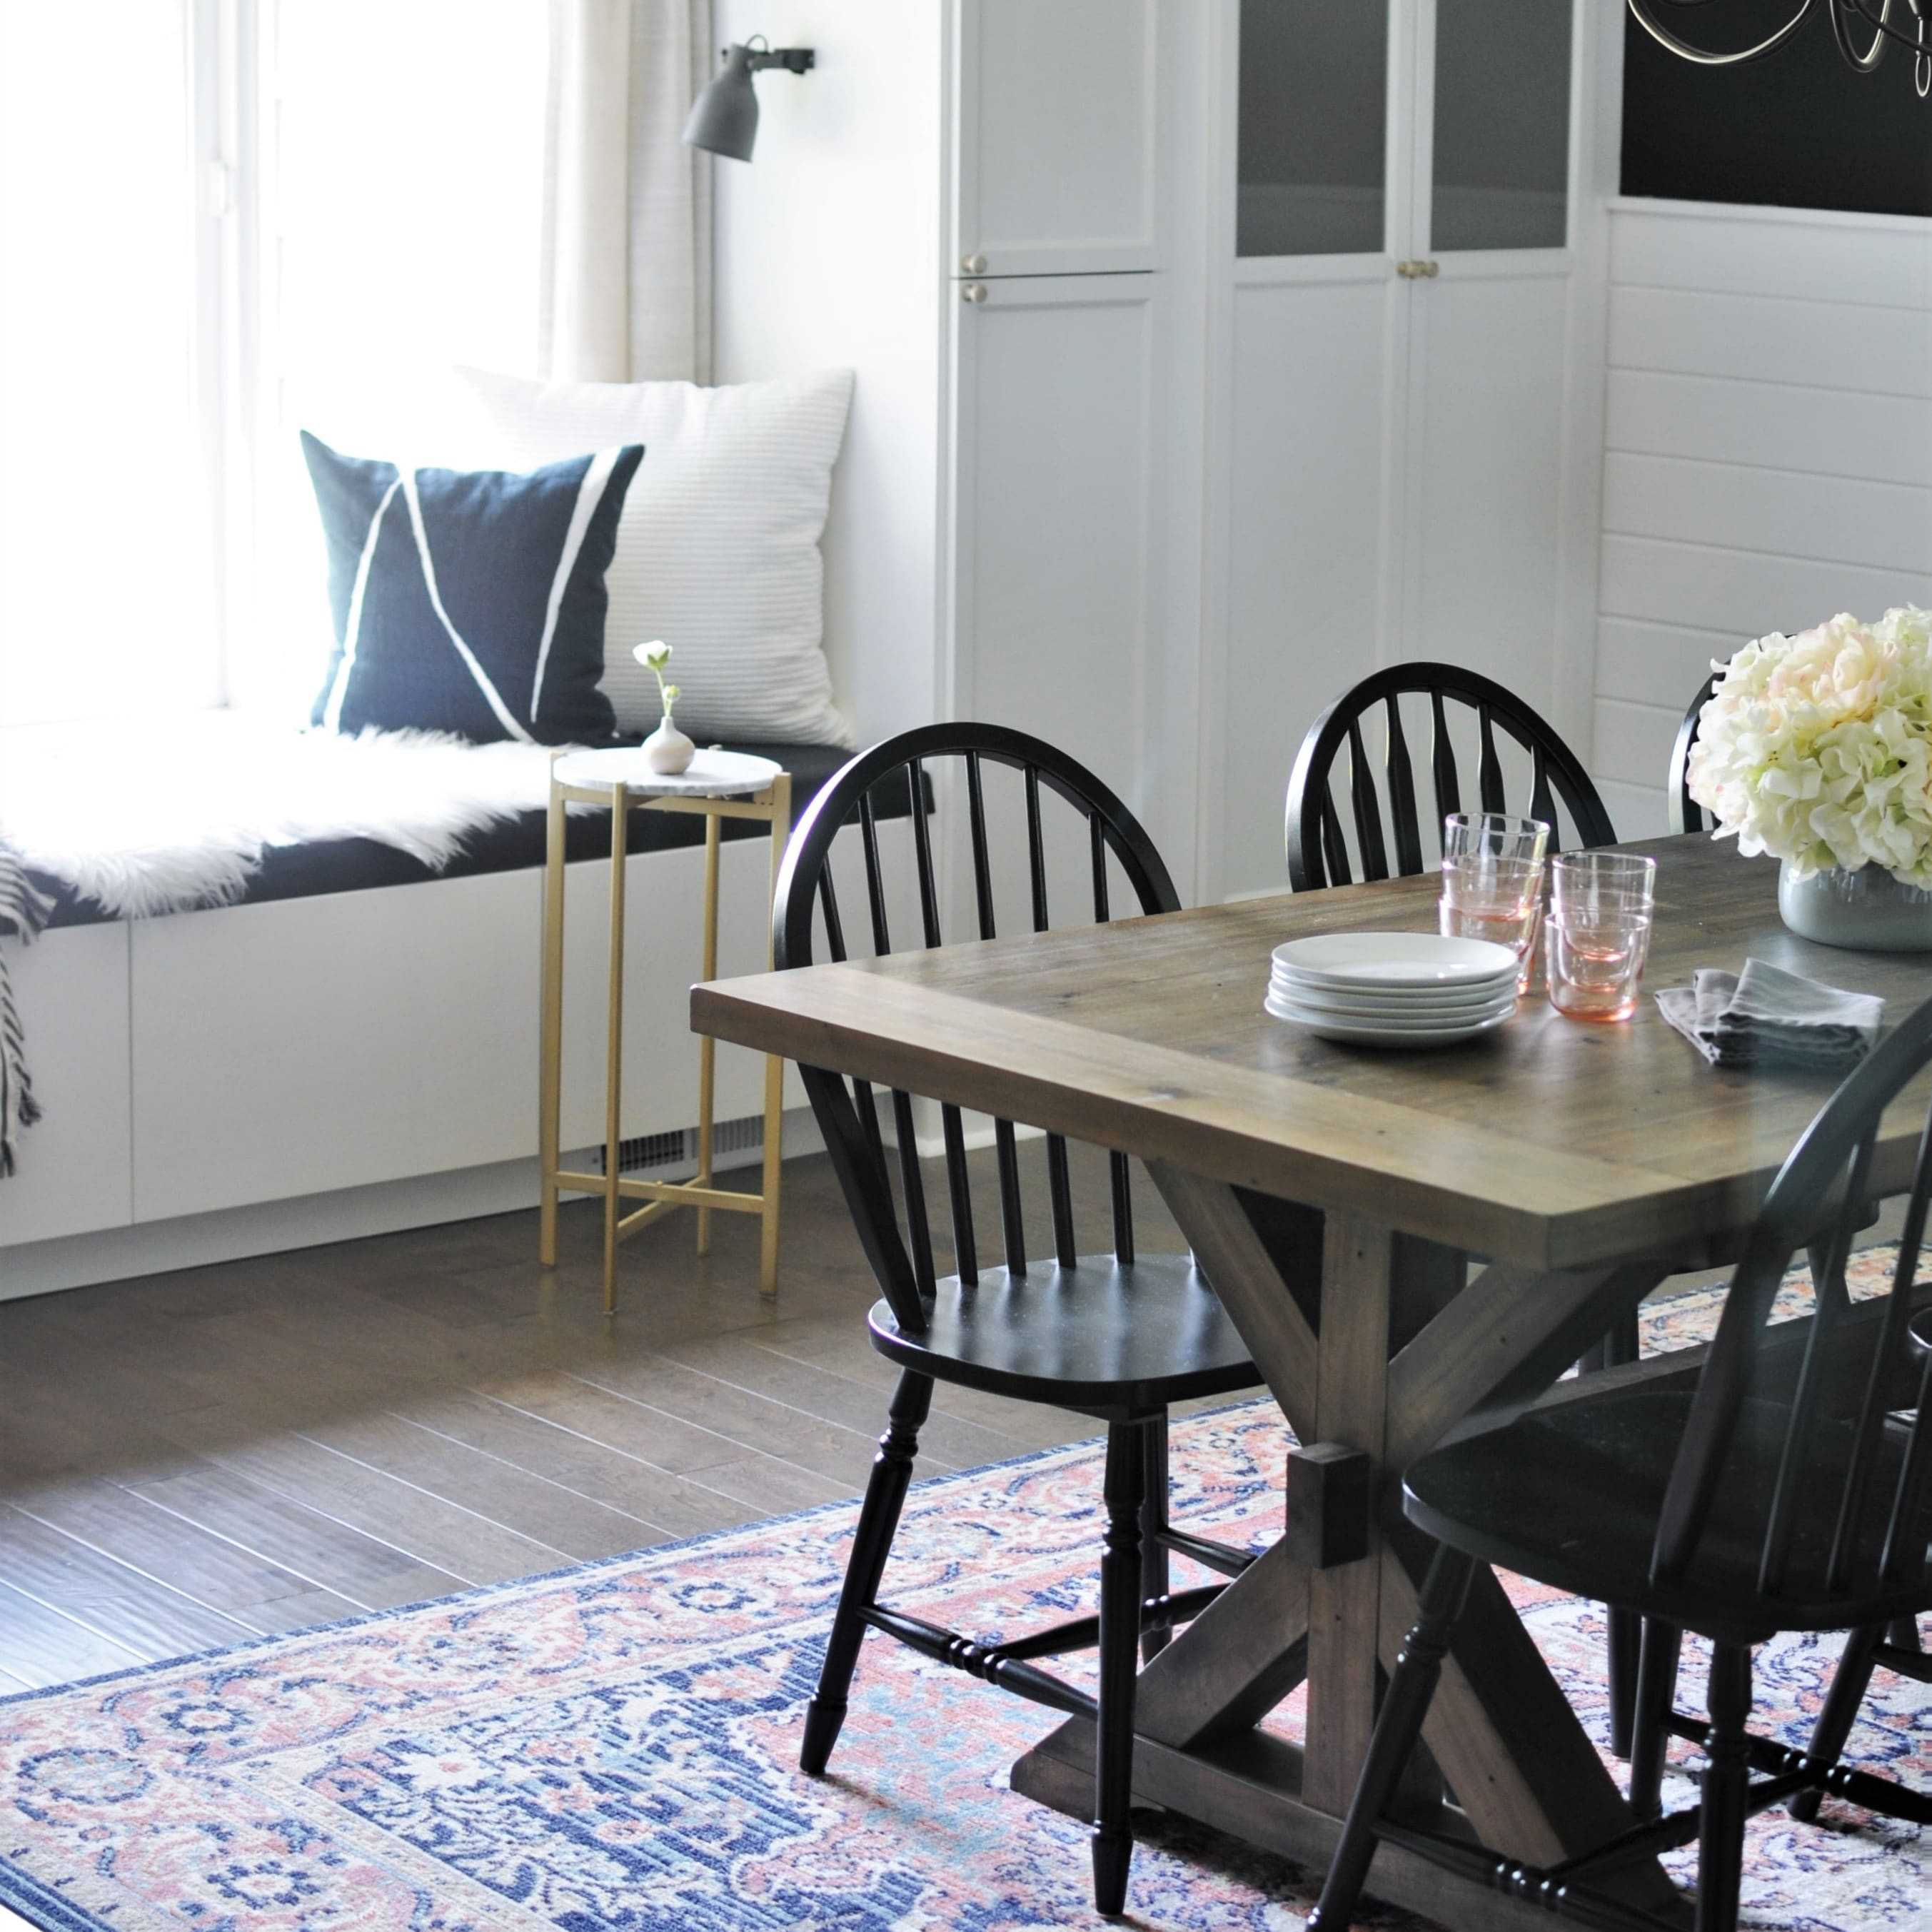 Blush & Moody Dining Room Makeover REVEAL!